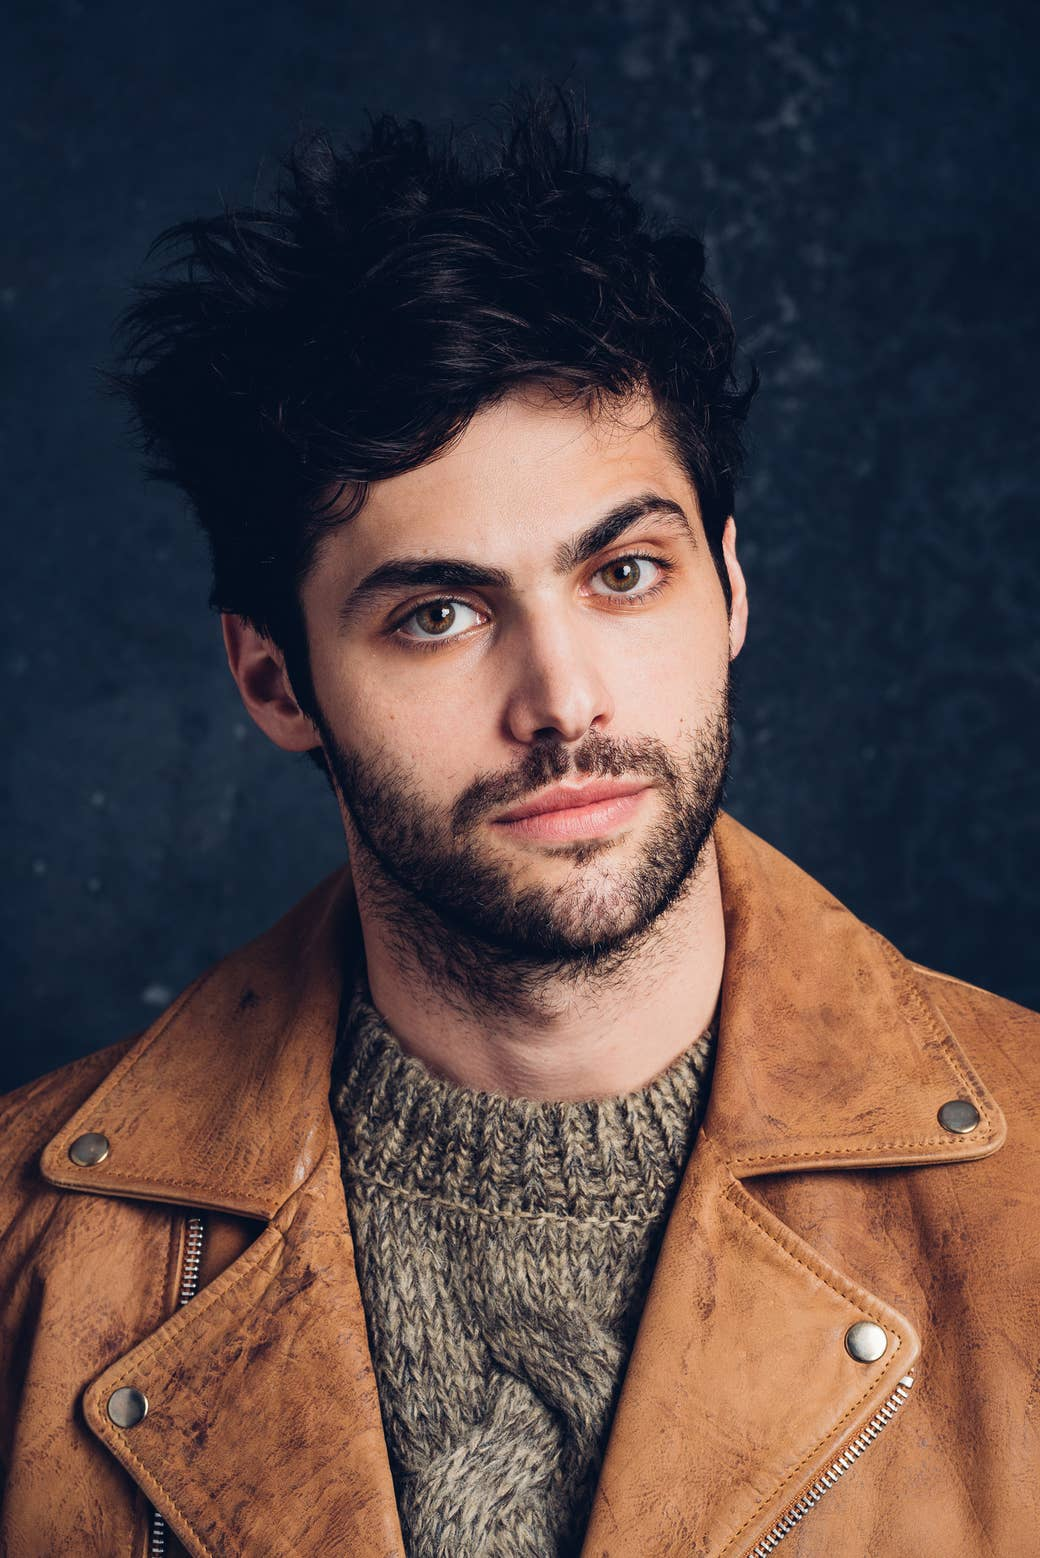 shadowhunters matthew daddario season 2